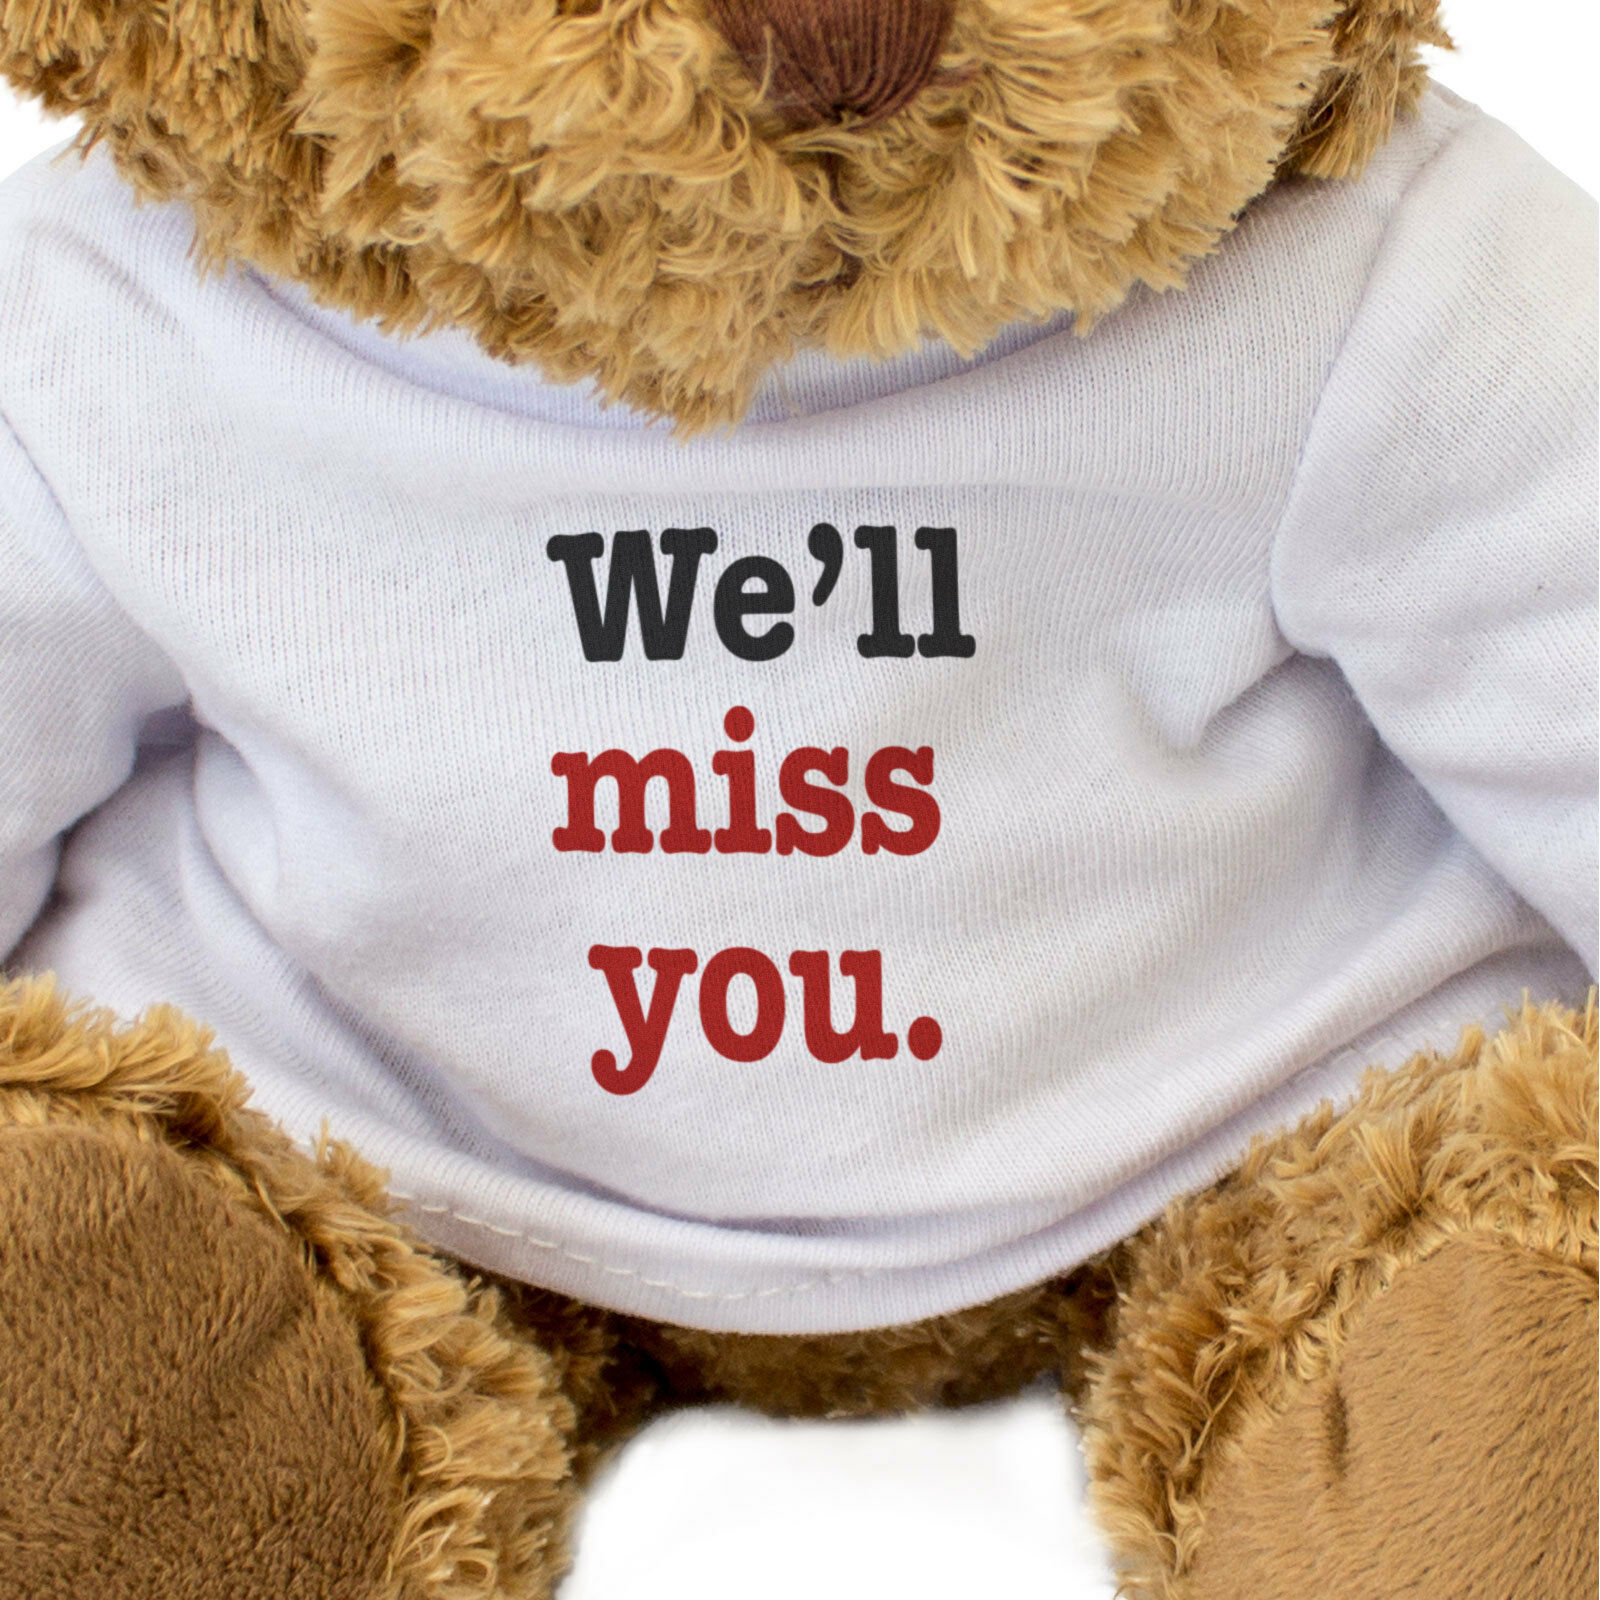 NEW - YOU WE'LL MISS YOU - - Teddy Bear - Soft Cute Cuddly - Leaving Gift Present 742486